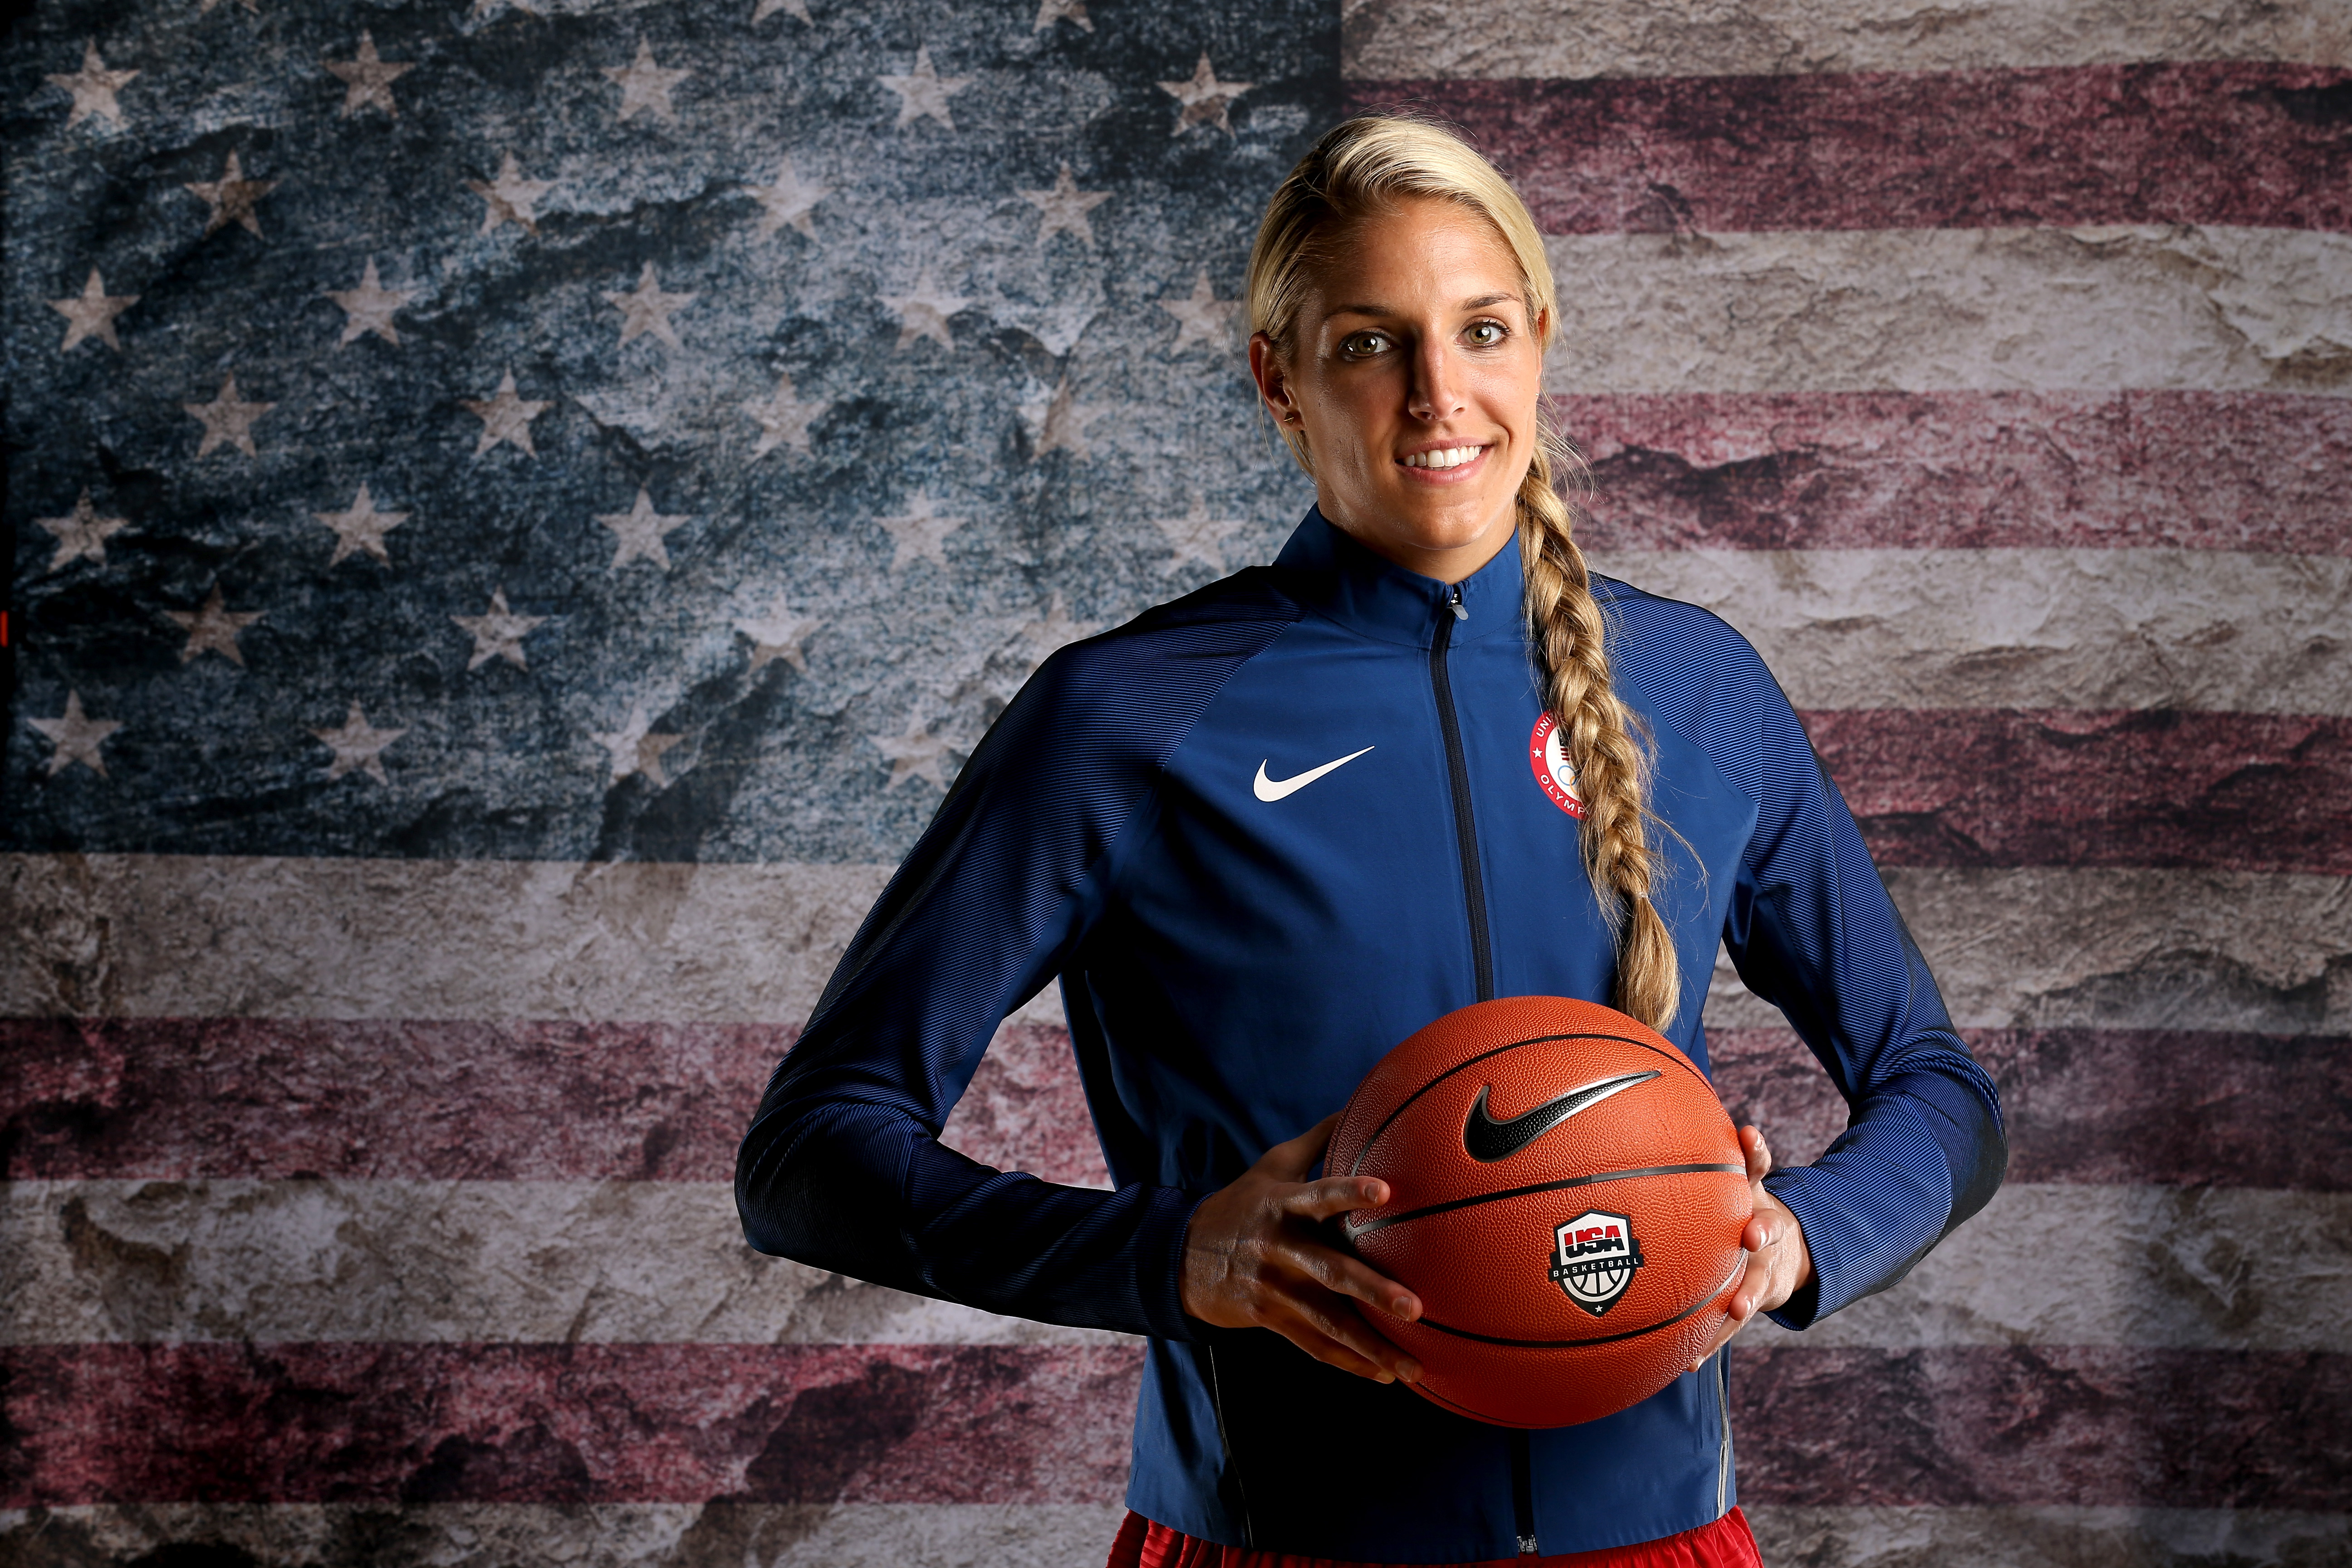 Elena Delle Donne at the 2016 Team USA Media Summit in Beverly Hills, Calif. on March 9, 2016.